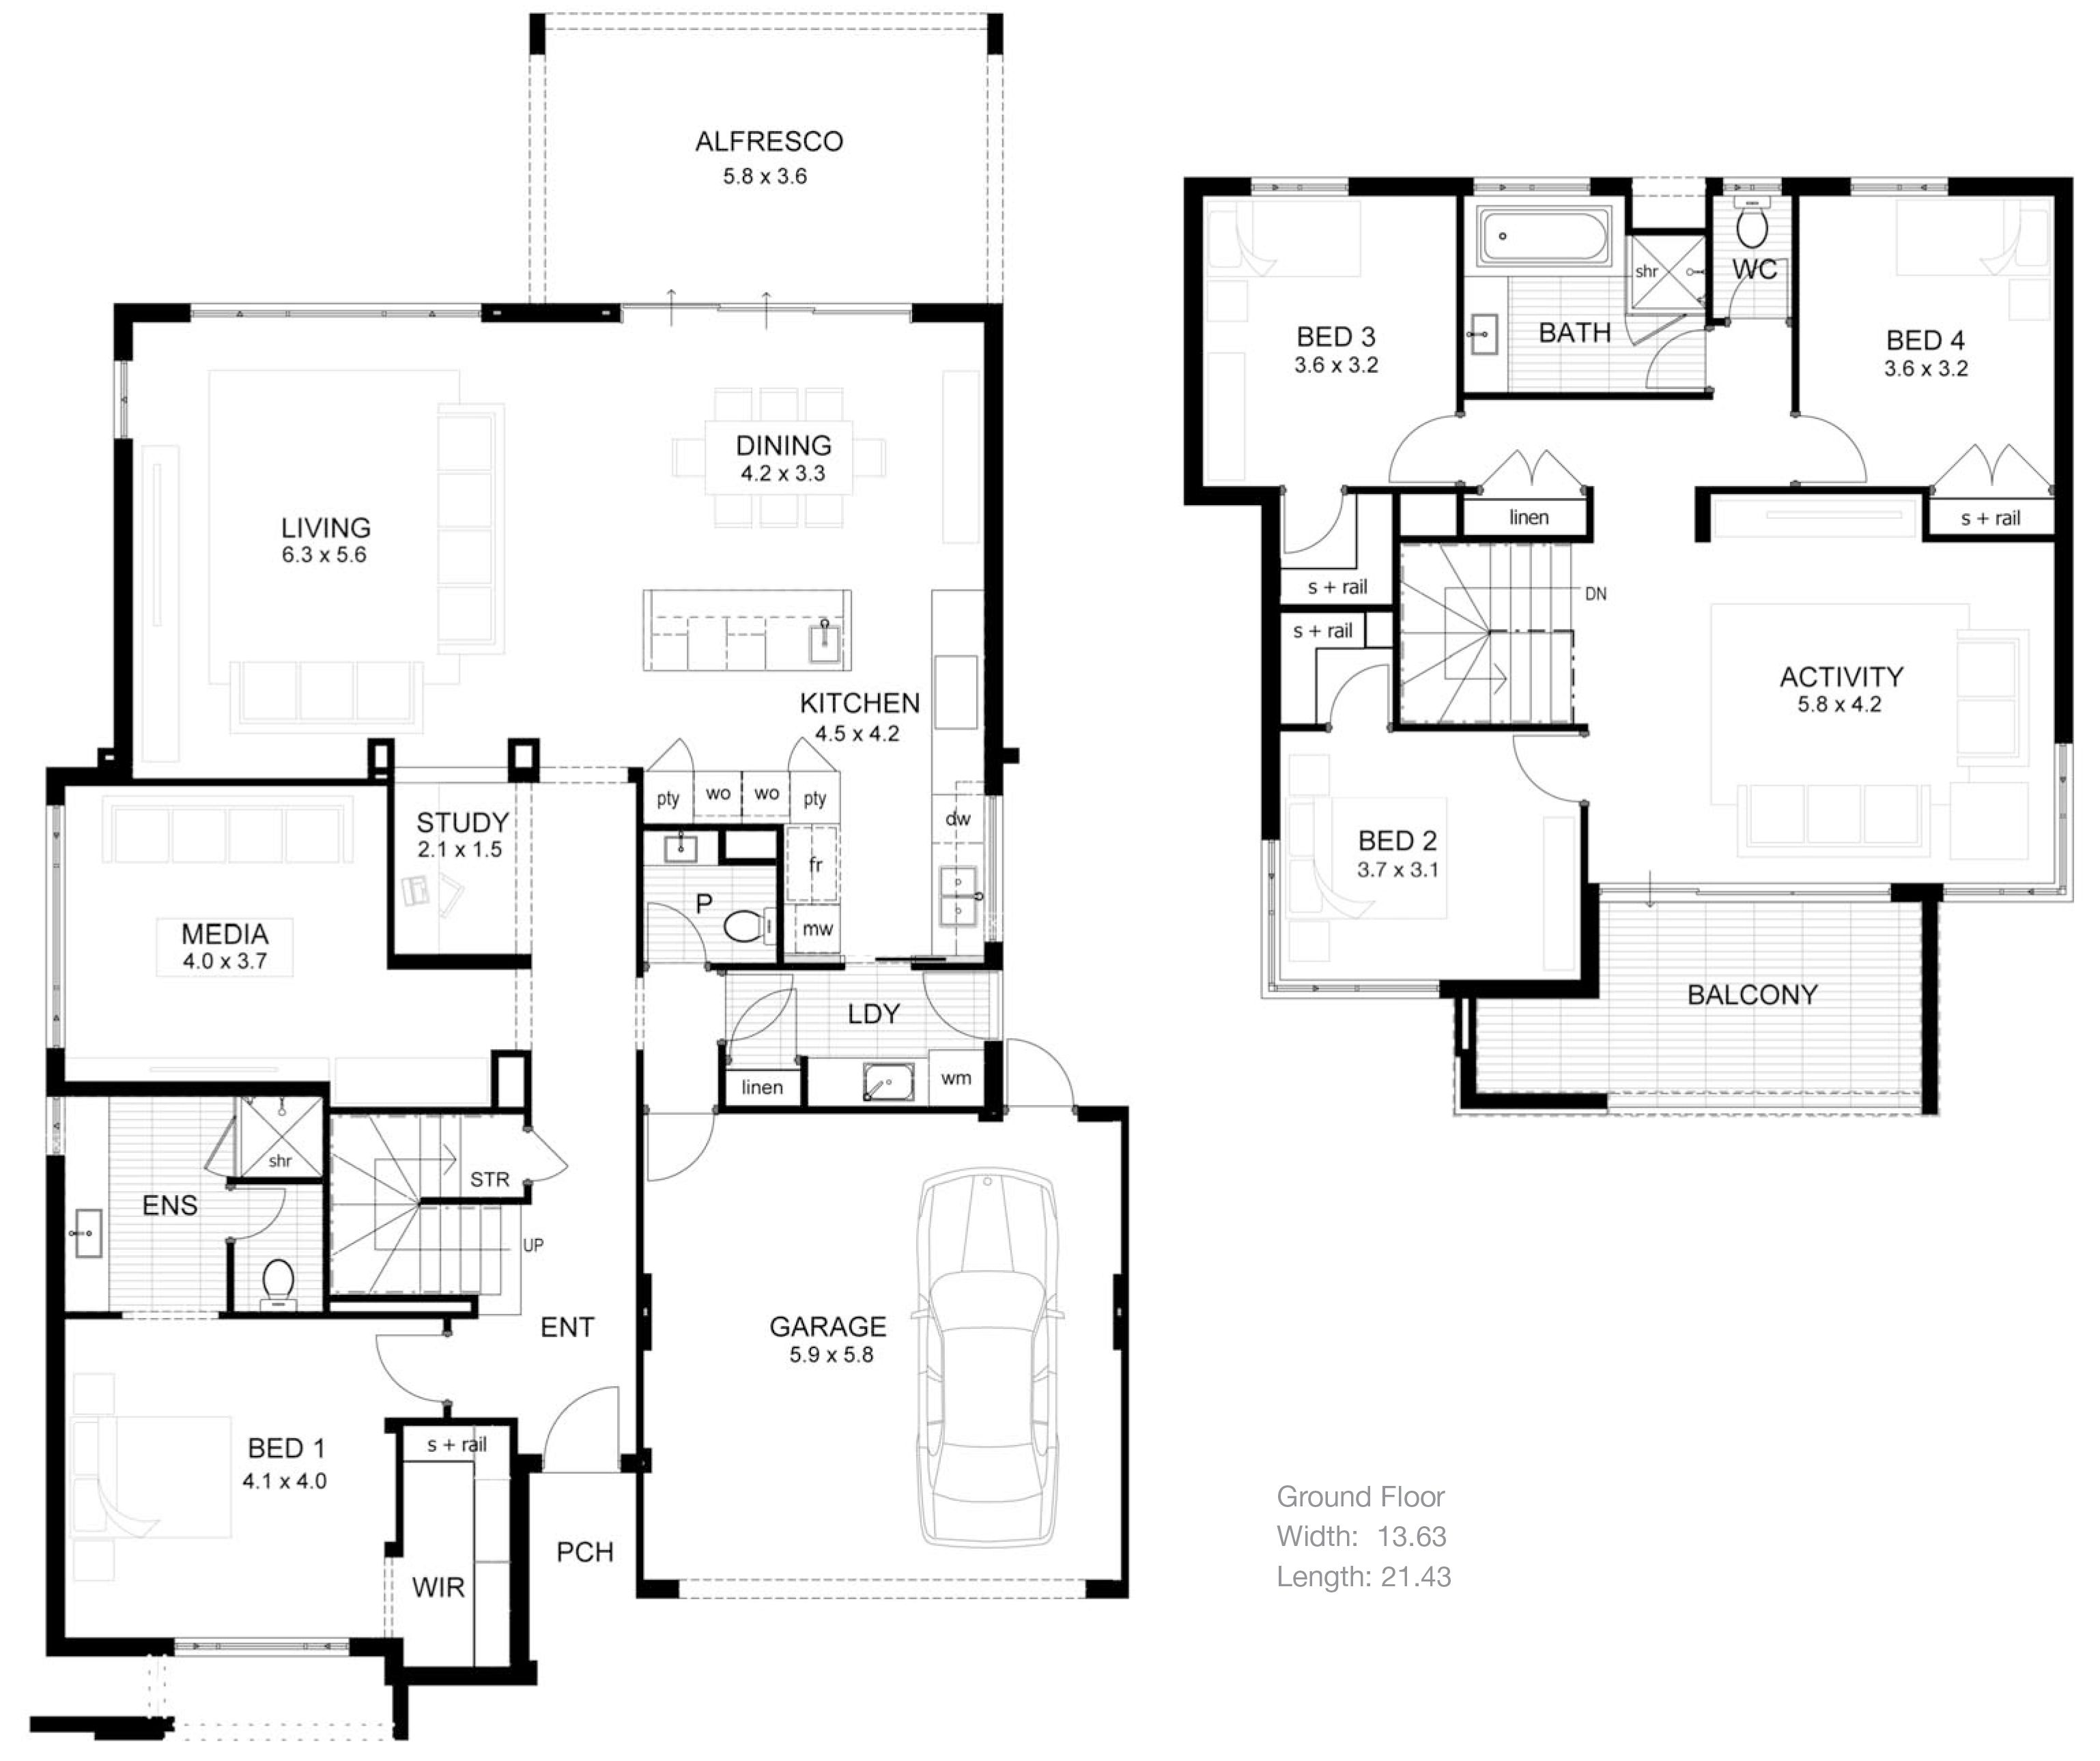 Wonderful modern minimalist house floor plans plus pictures of 2 storey modern minimalist house plan 4 home ideas